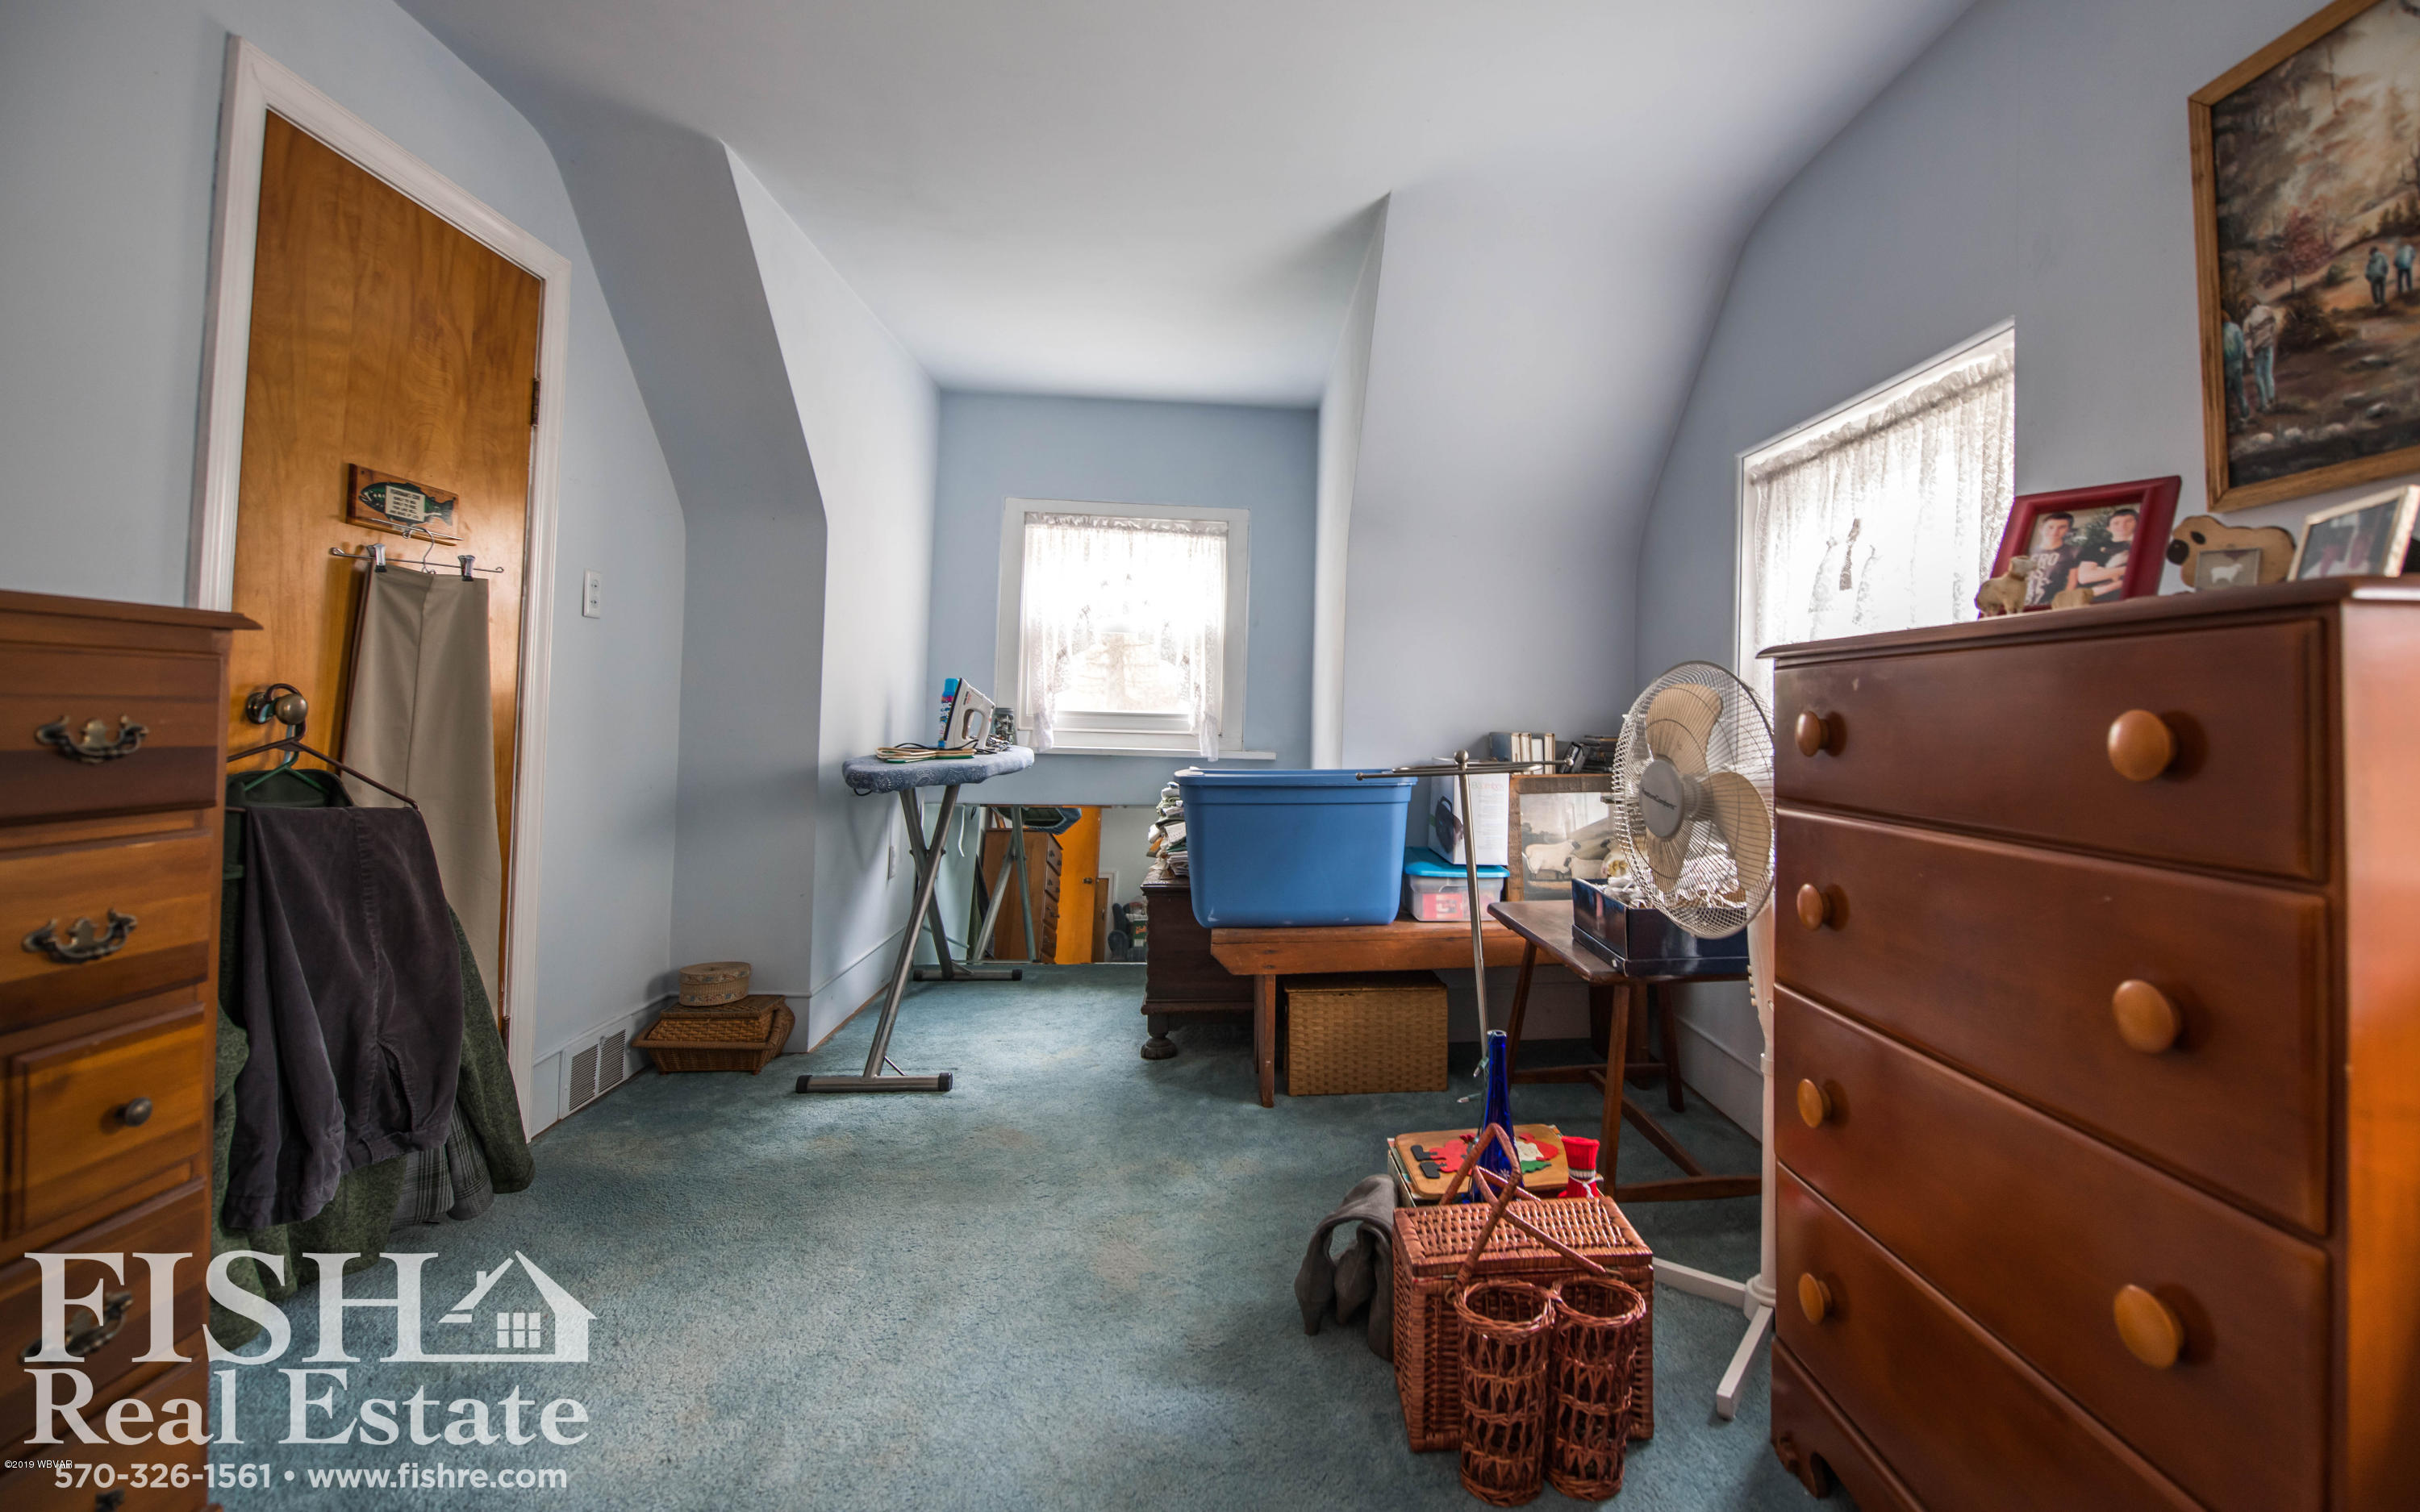 834 STATE ROUTE 973 E HIGHWAY,Cogan Station,PA 17728,3 Bedrooms Bedrooms,2 BathroomsBathrooms,Residential,STATE ROUTE 973 E,WB-86195